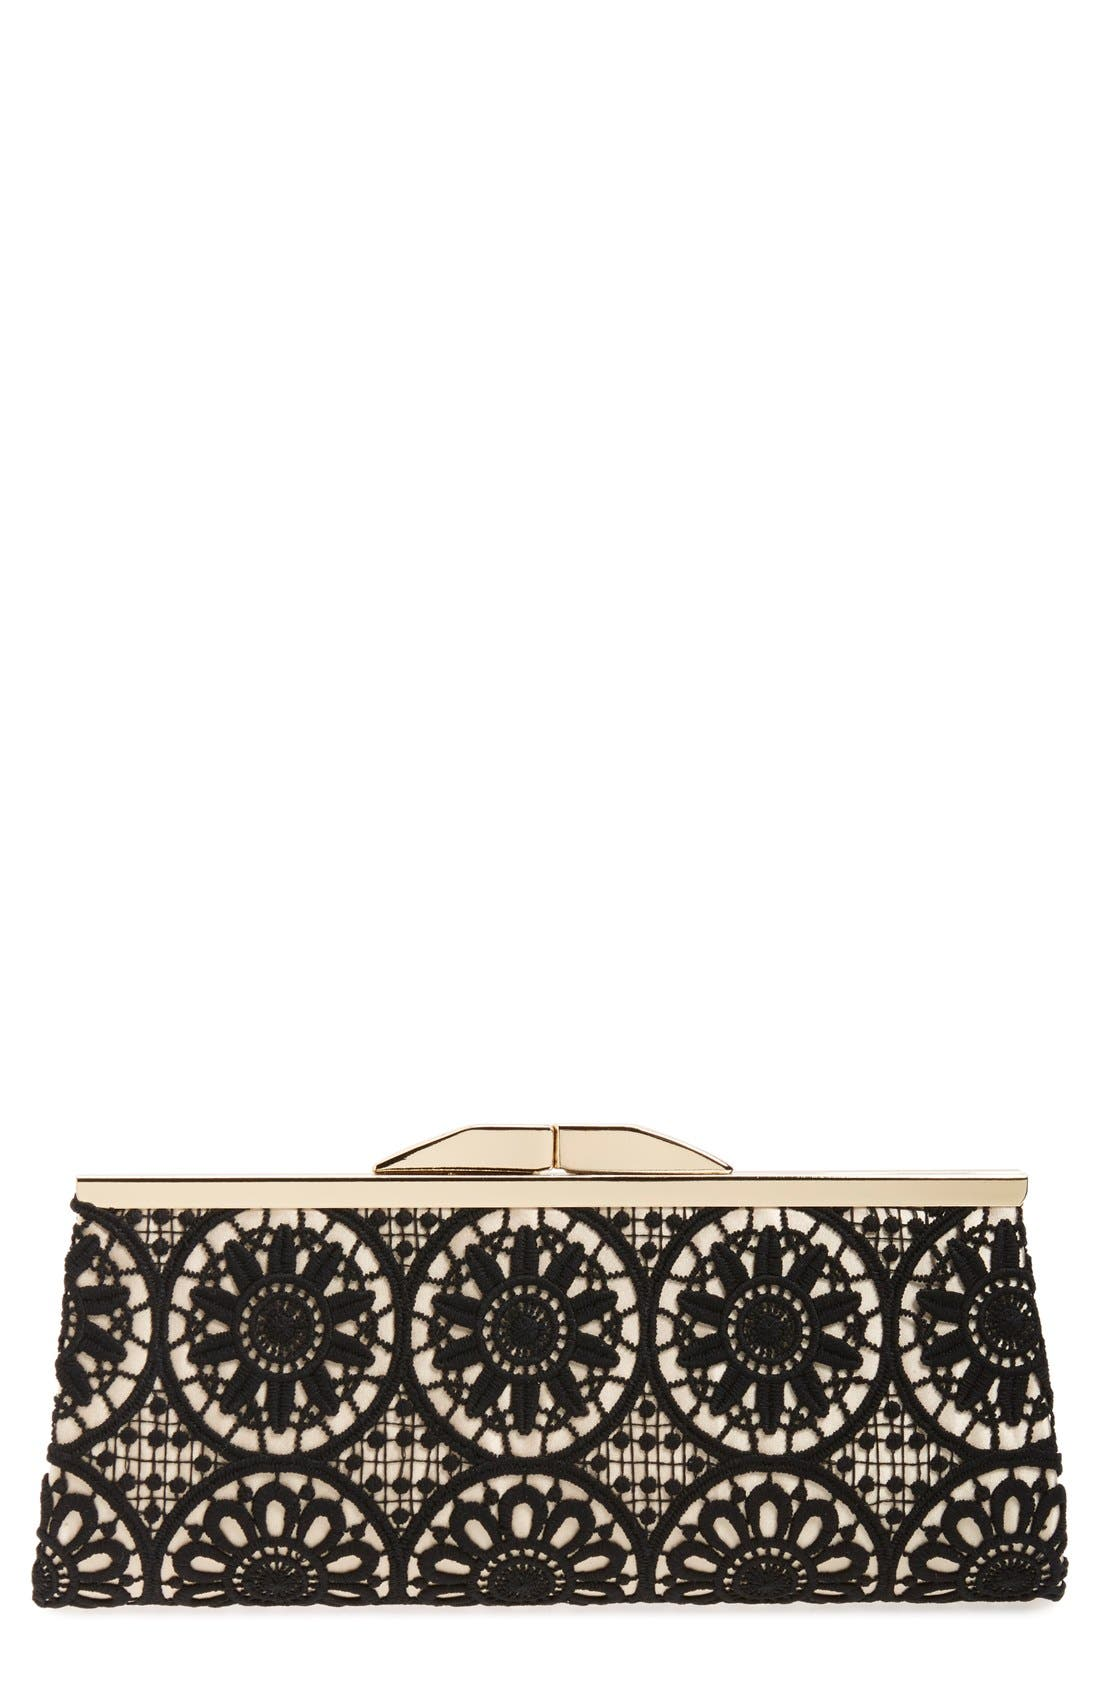 Alternate Image 1 Selected - Jessica McClintock 'Sloan' Floral Lace Clutch